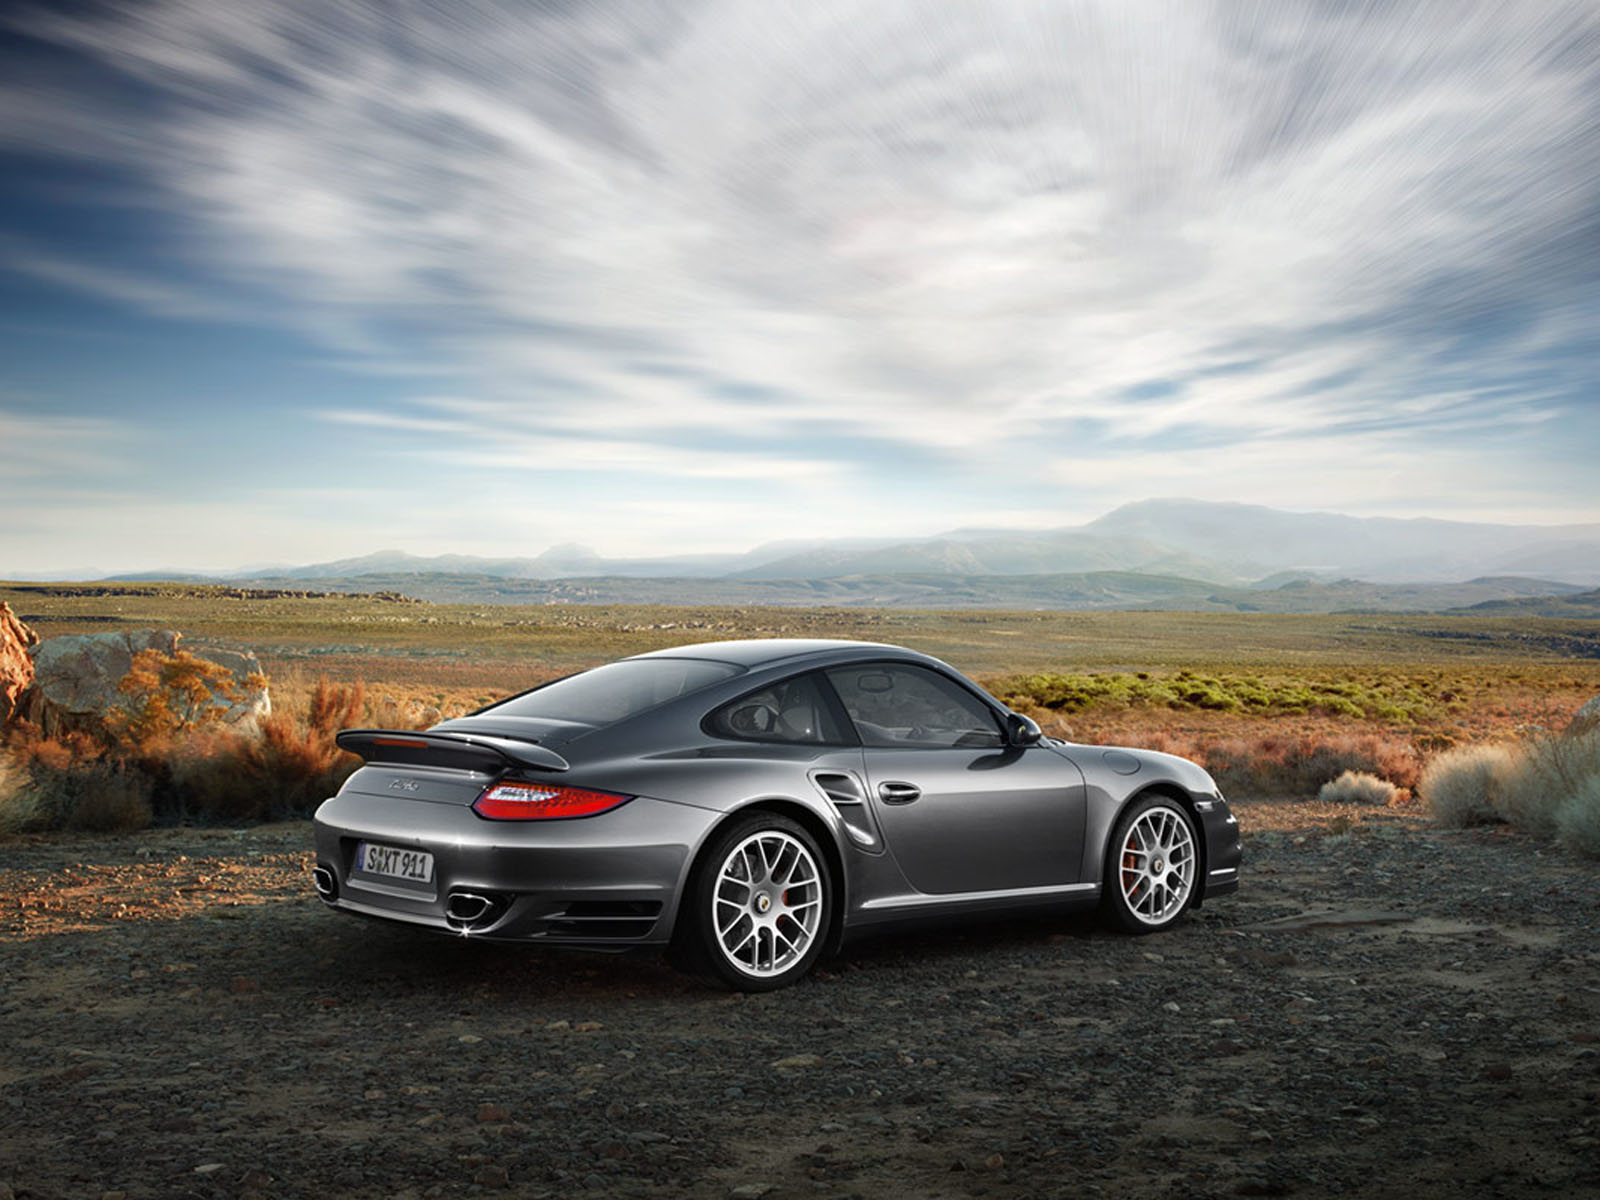 tag porsche 911 turbo car wallpapers backgrounds photosimages and